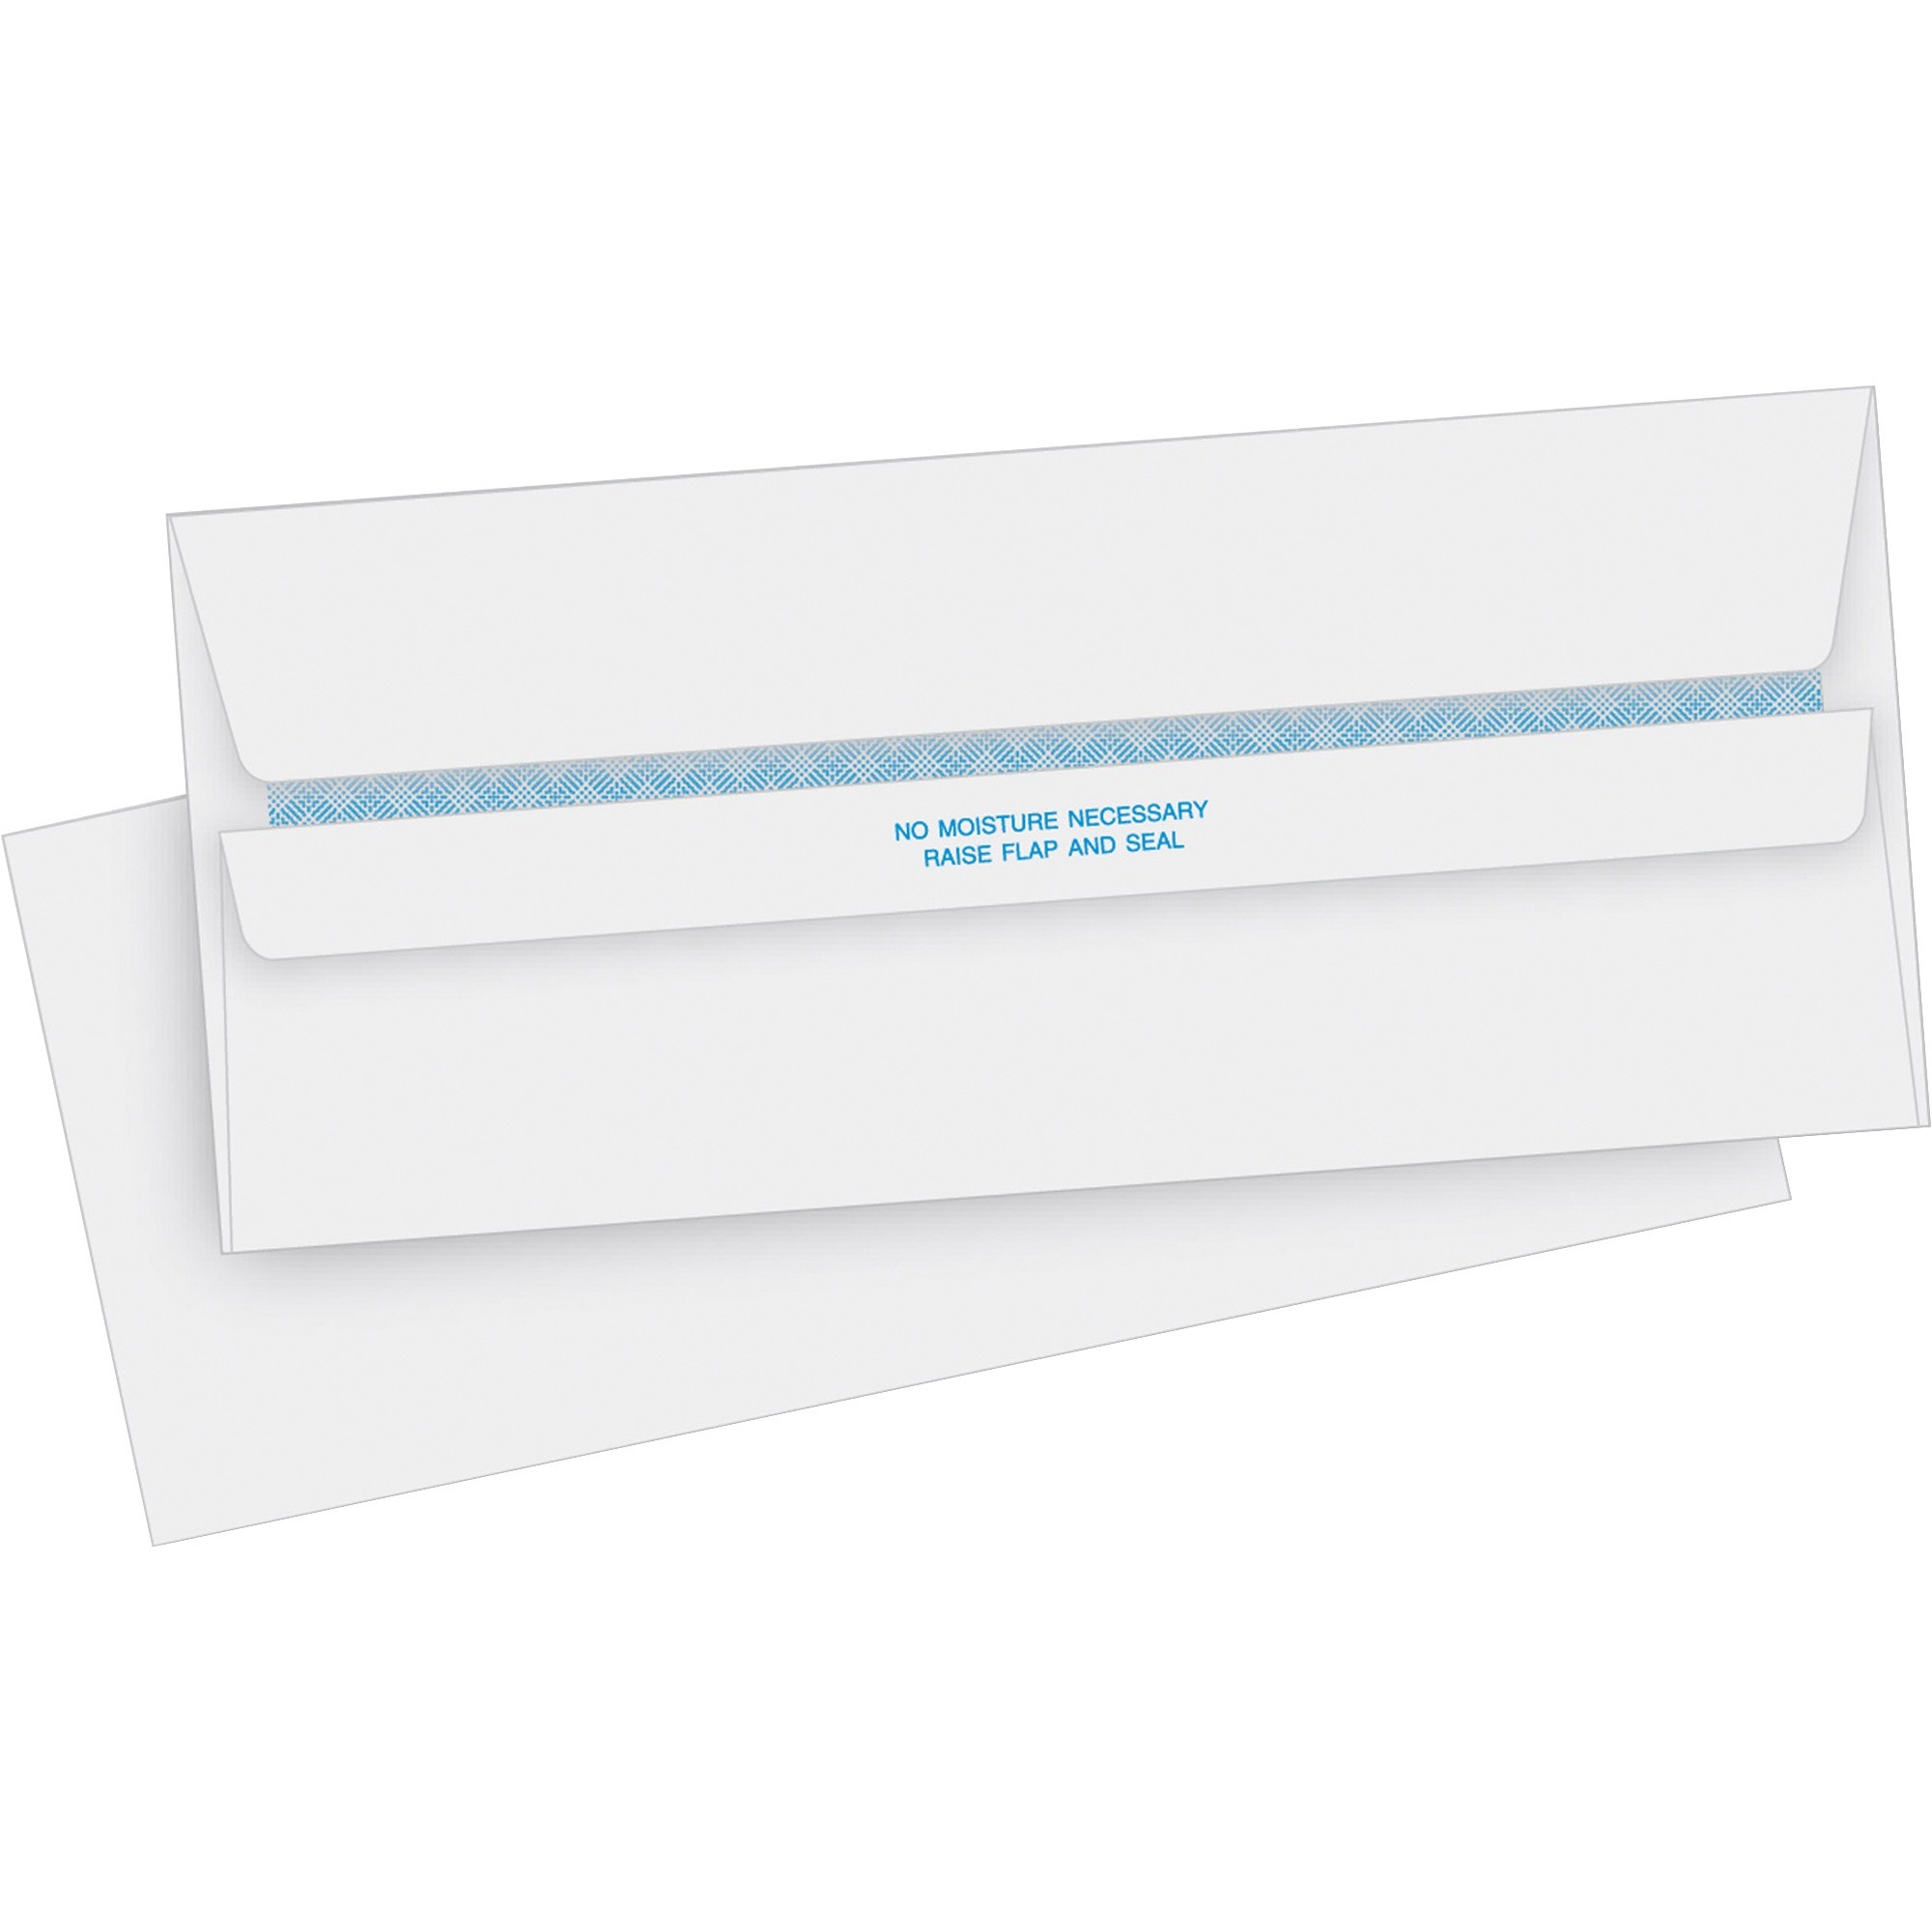 dynamic office products office supplies envelopes forms